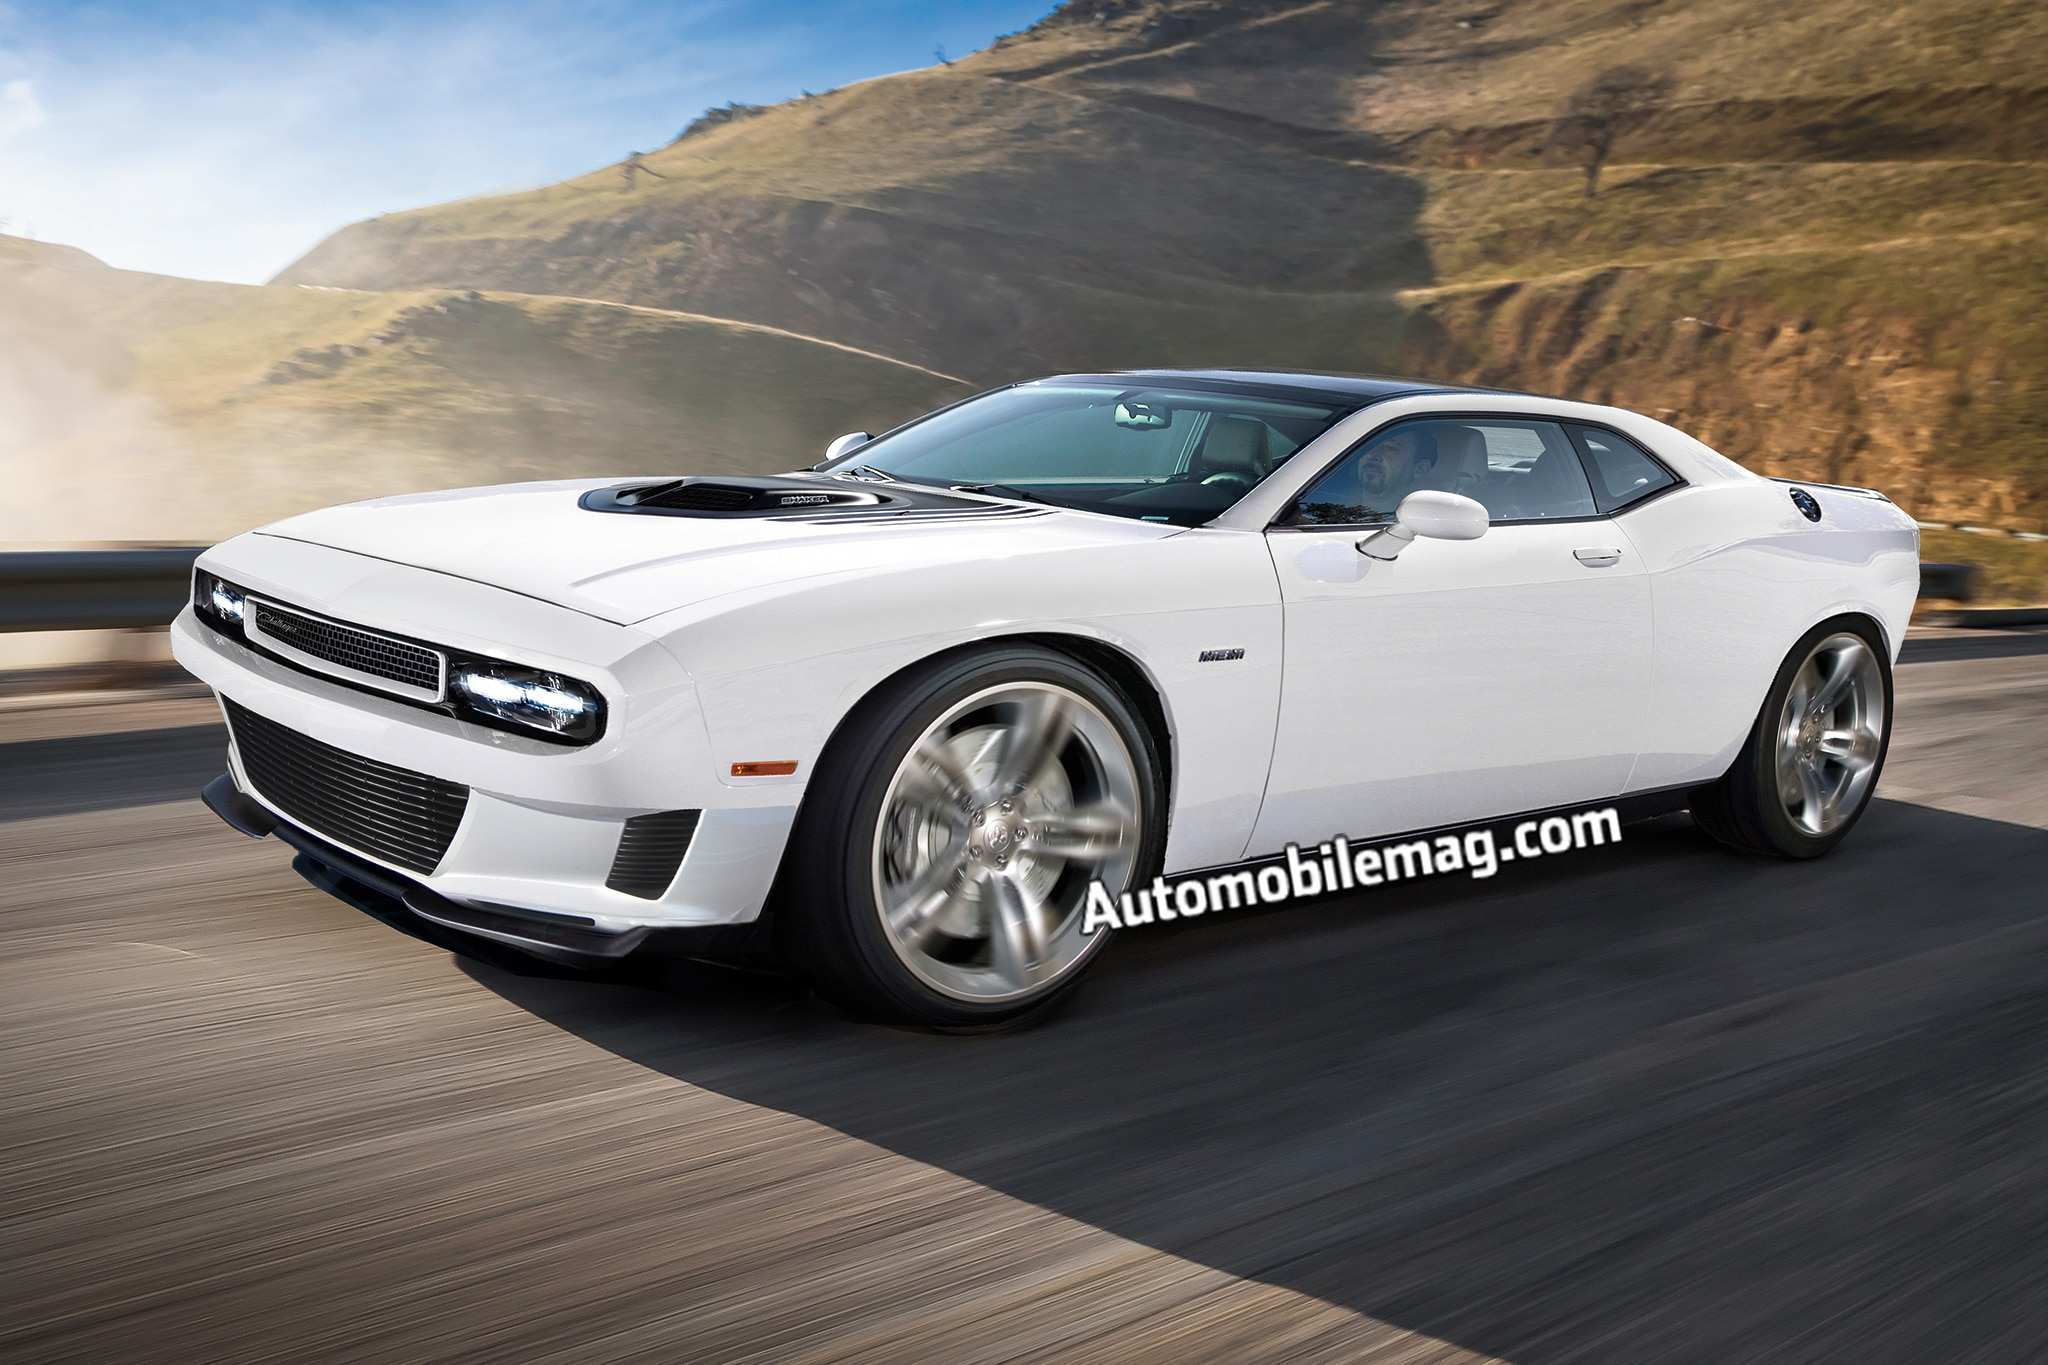 23 New 2020 Chrysler Barracuda Redesign and Concept for 2020 Chrysler Barracuda